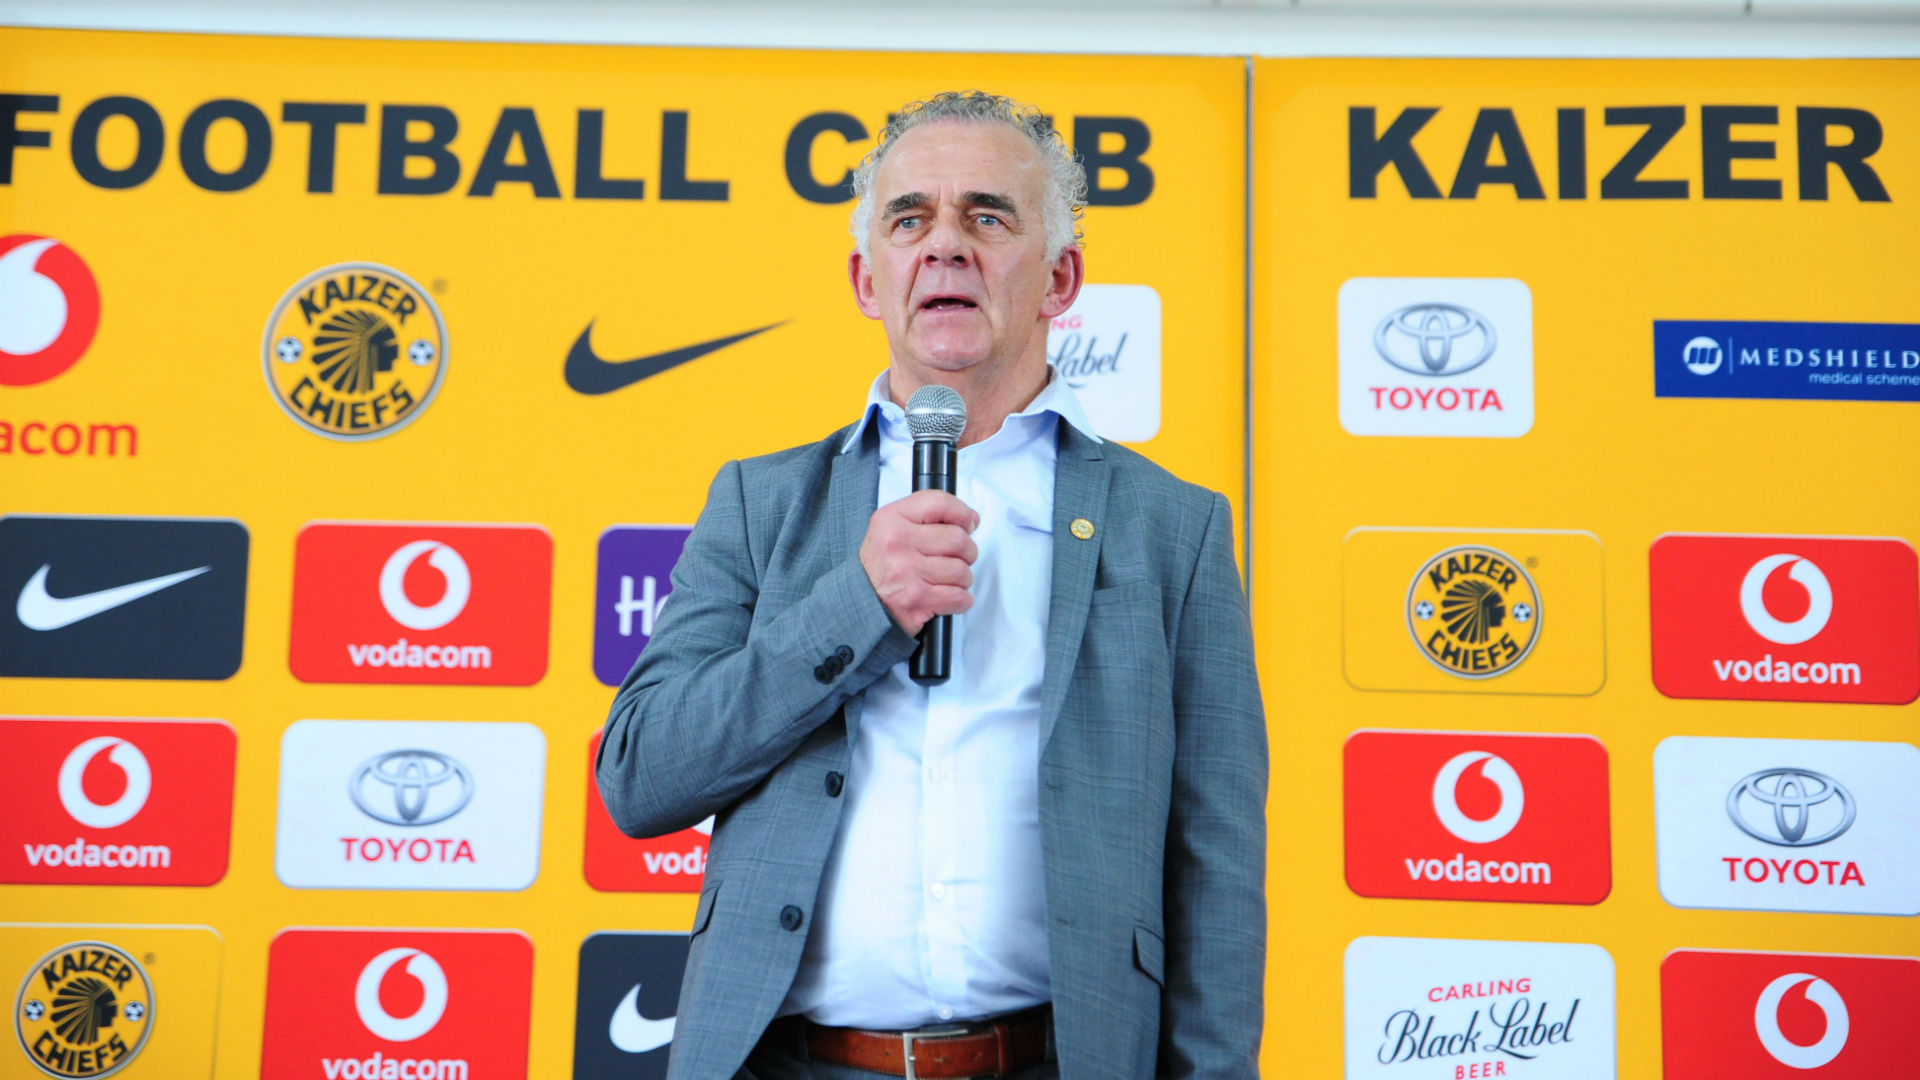 Rob Hutting of Kaizer Chiefs